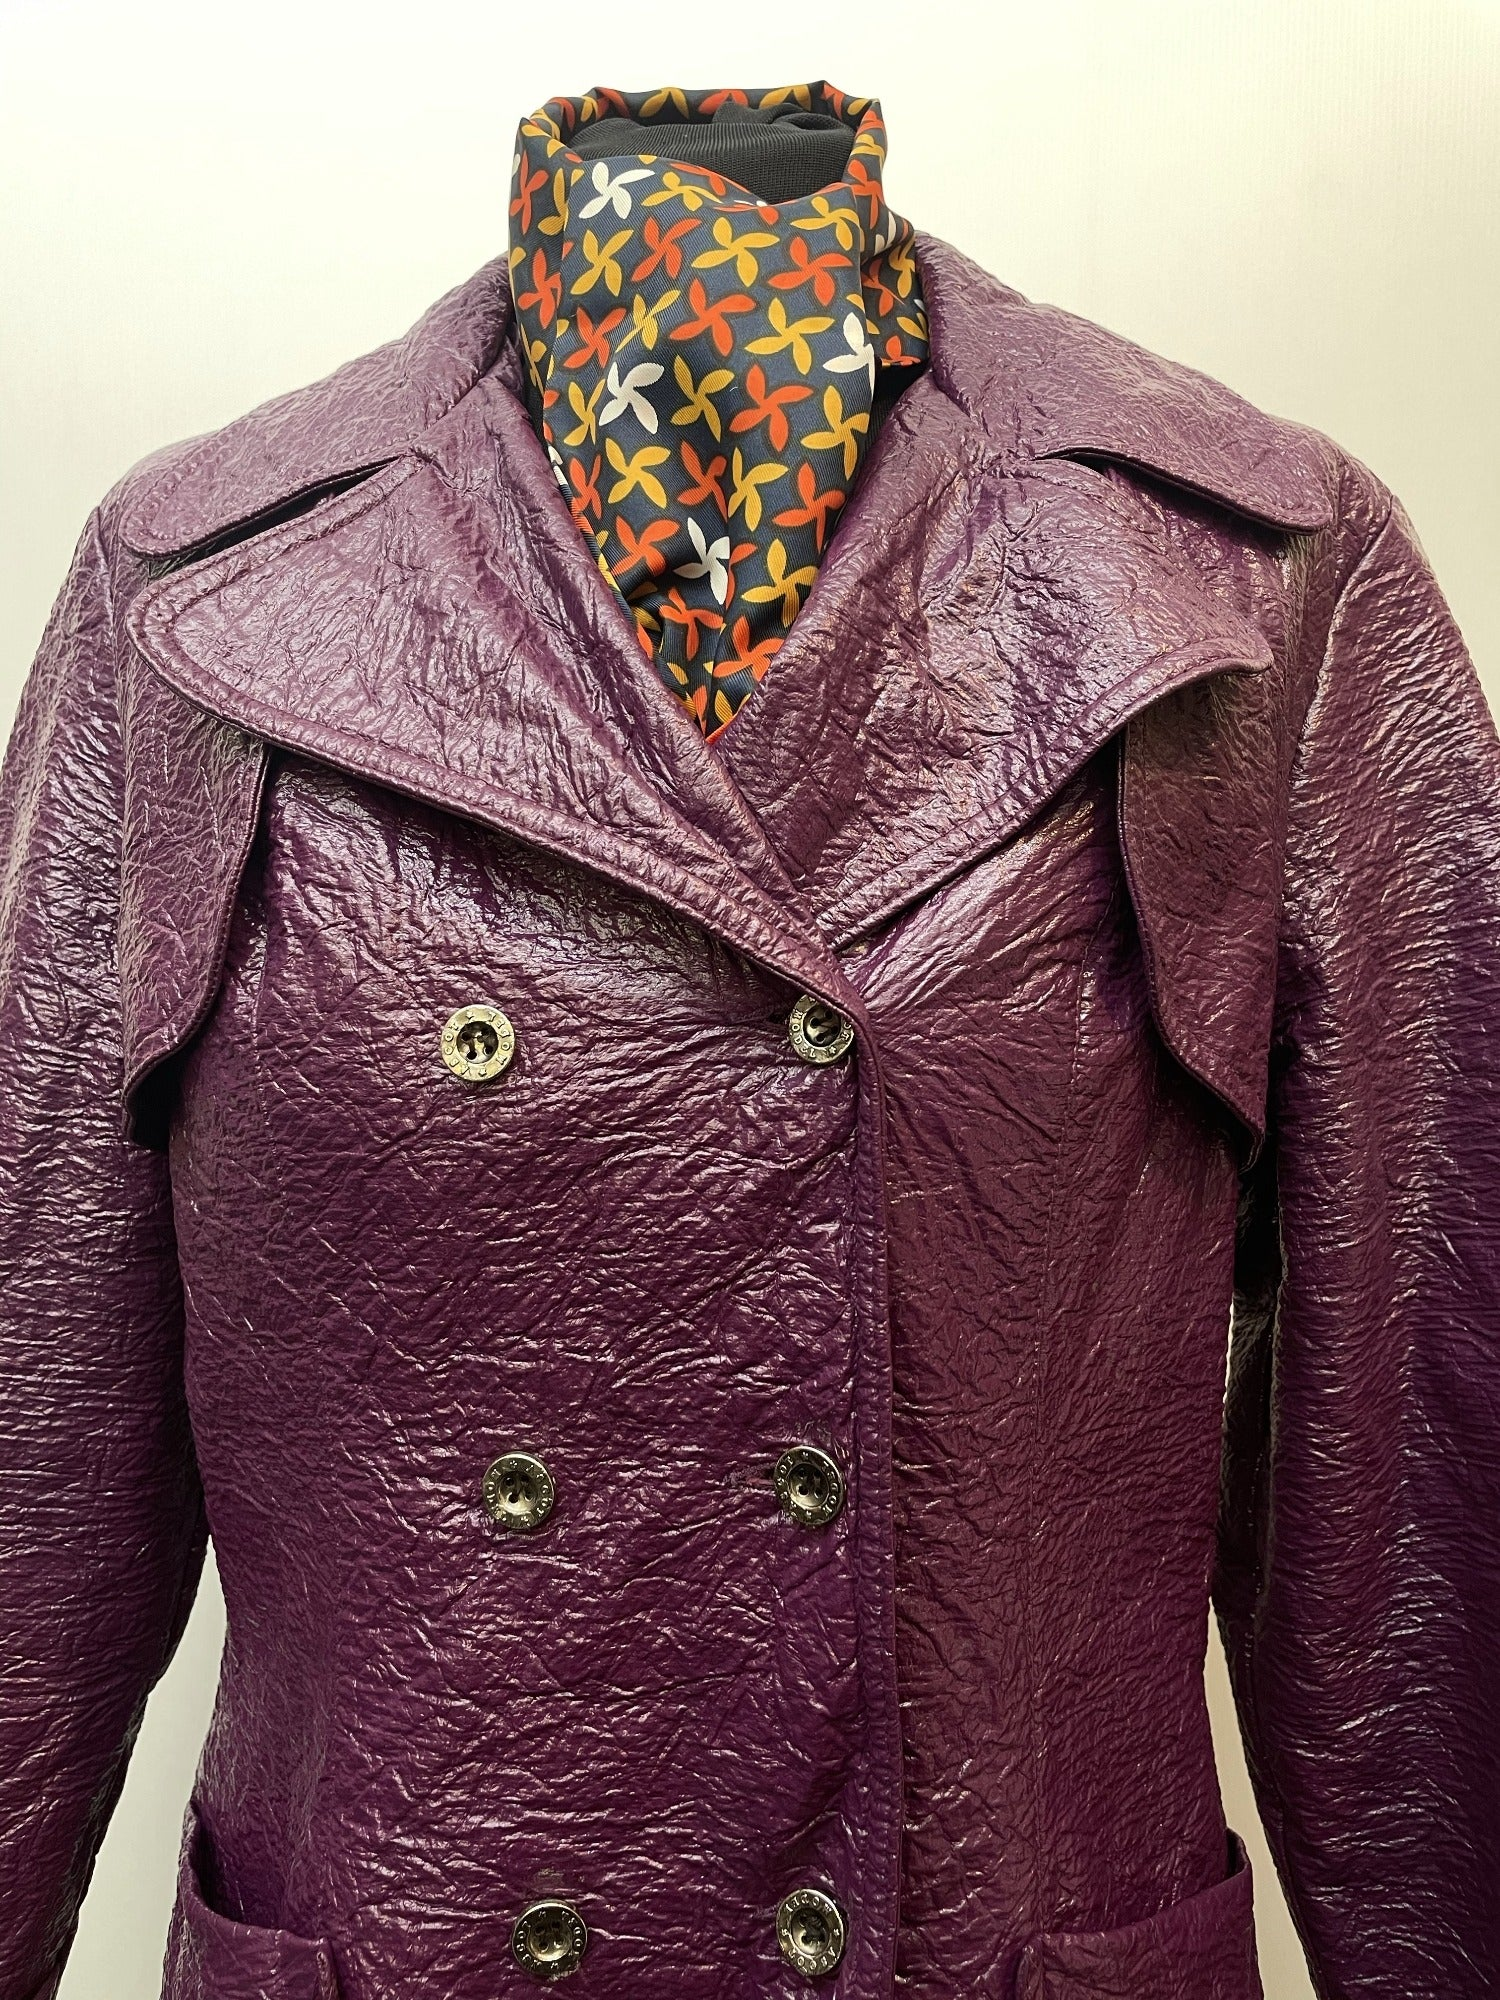 womens jacket  womens coat  womens  Vinyl PVC  vintage  Urban Village Vintage  purple  Leather  Jacket  double breasted coat  double breasted  decorative buttons  70s  60s  3/4  1970s  1960s  12